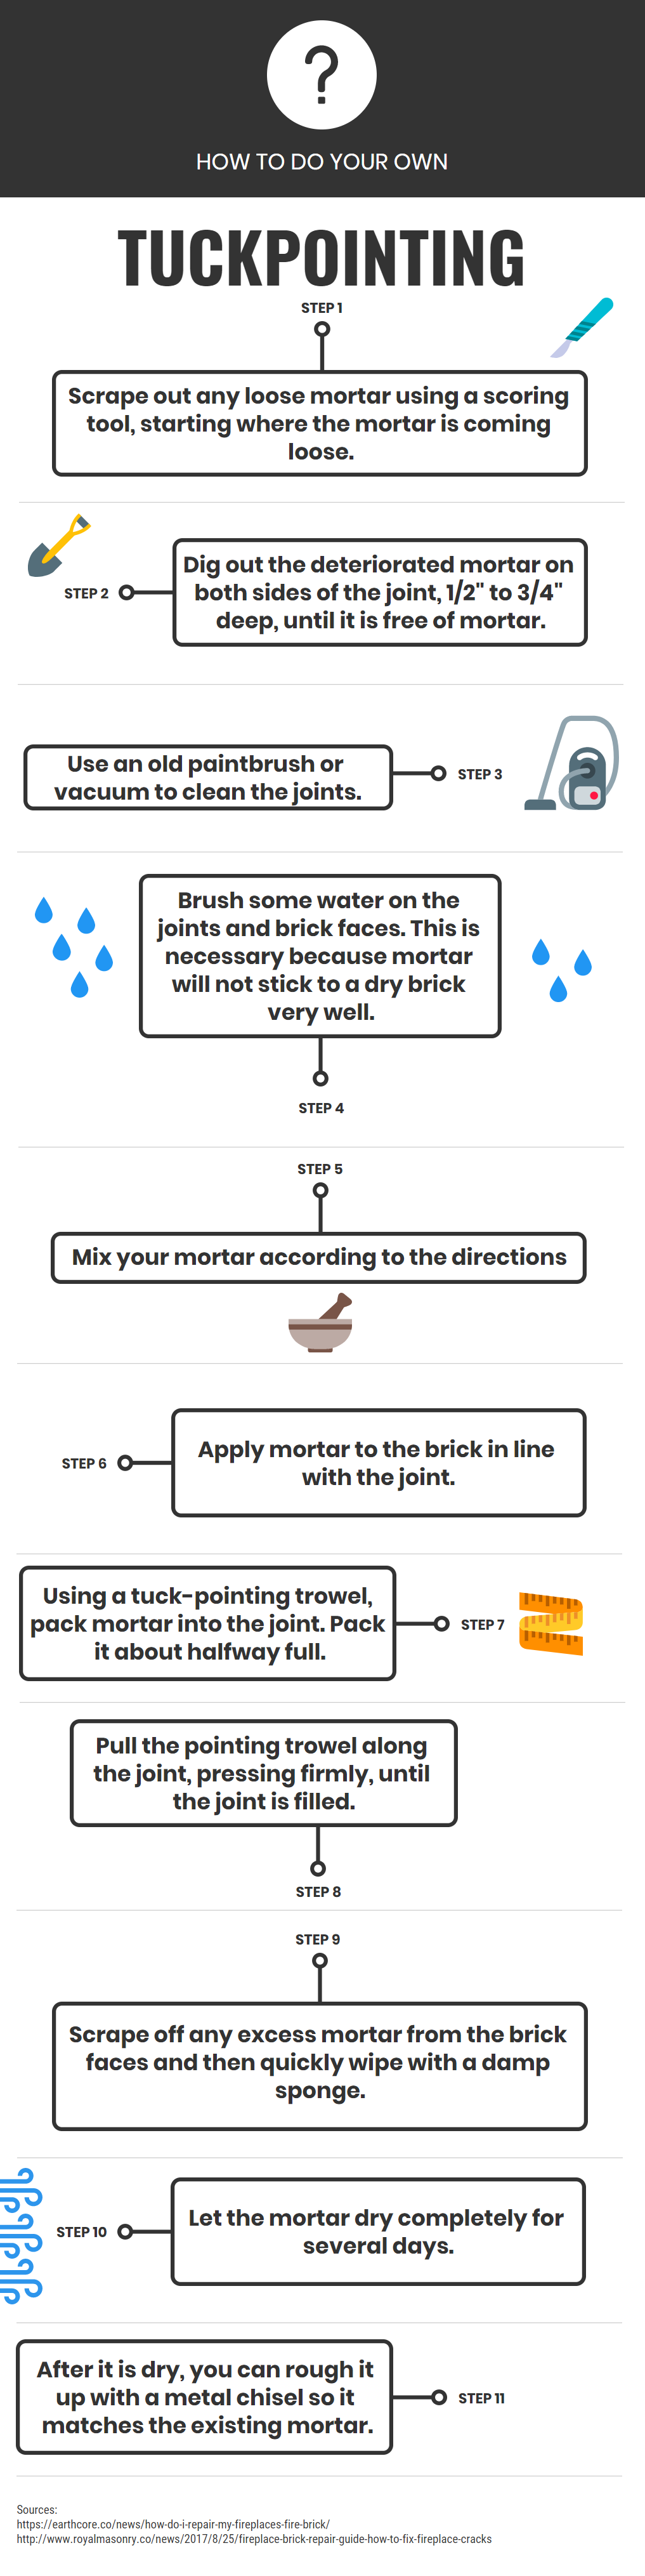 How to do your own tuckpointing infographic.png